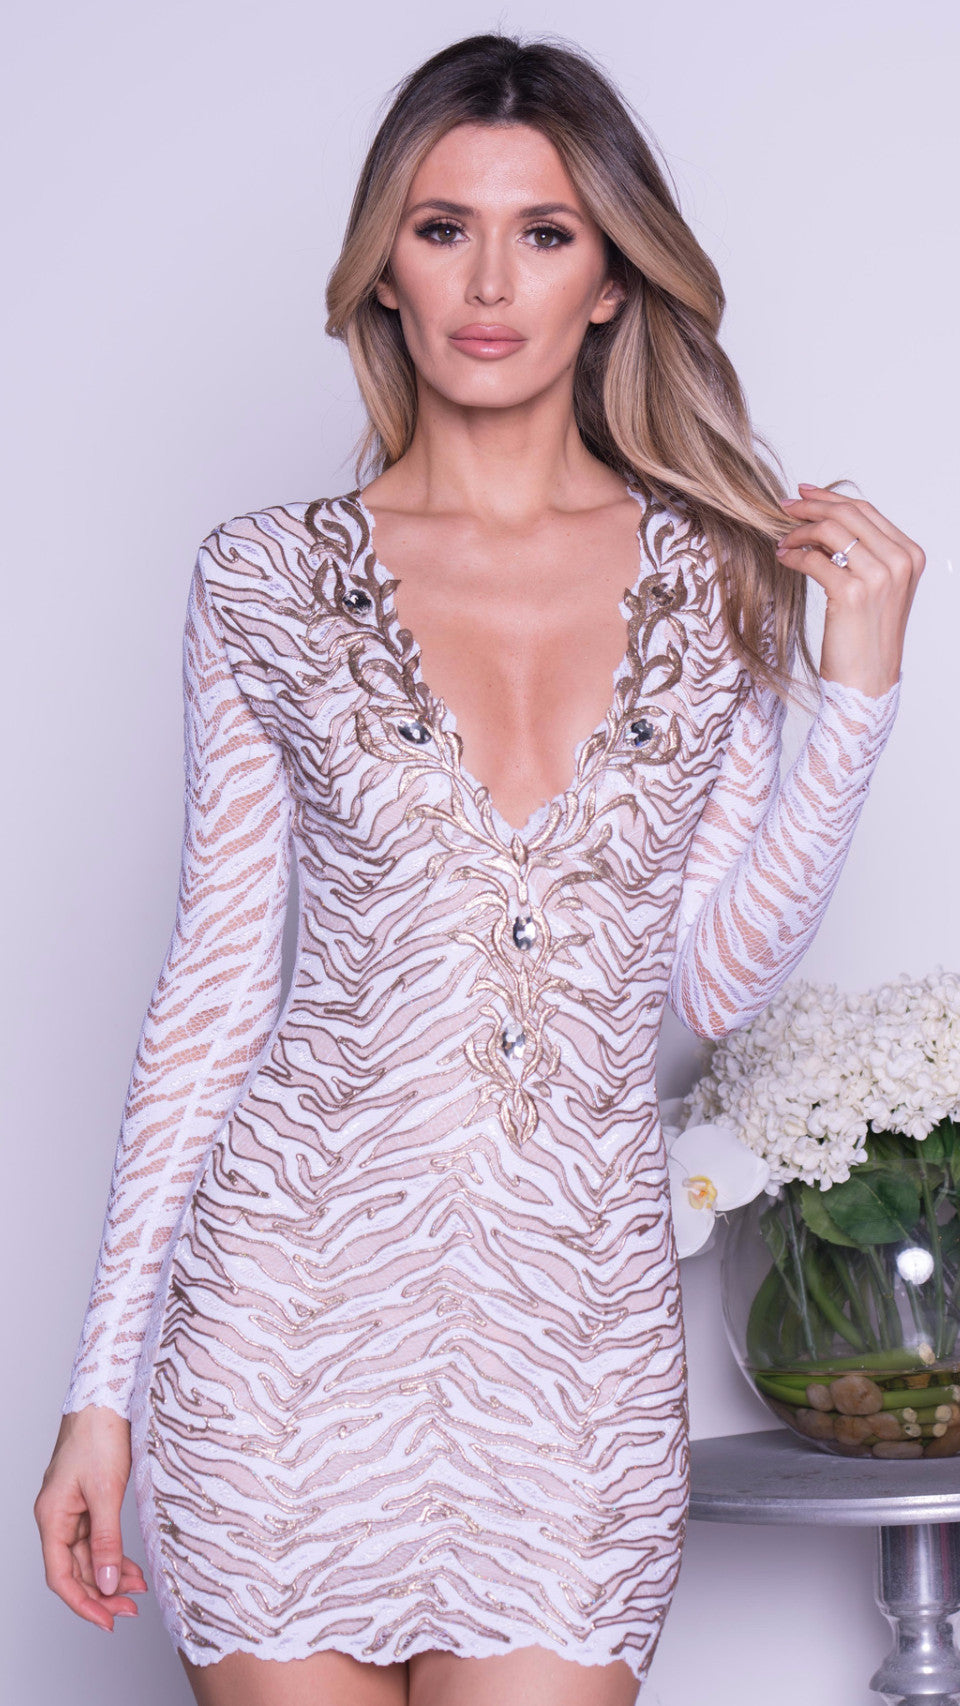 KARY LACE DRESS IN WHITE WITH GOLD